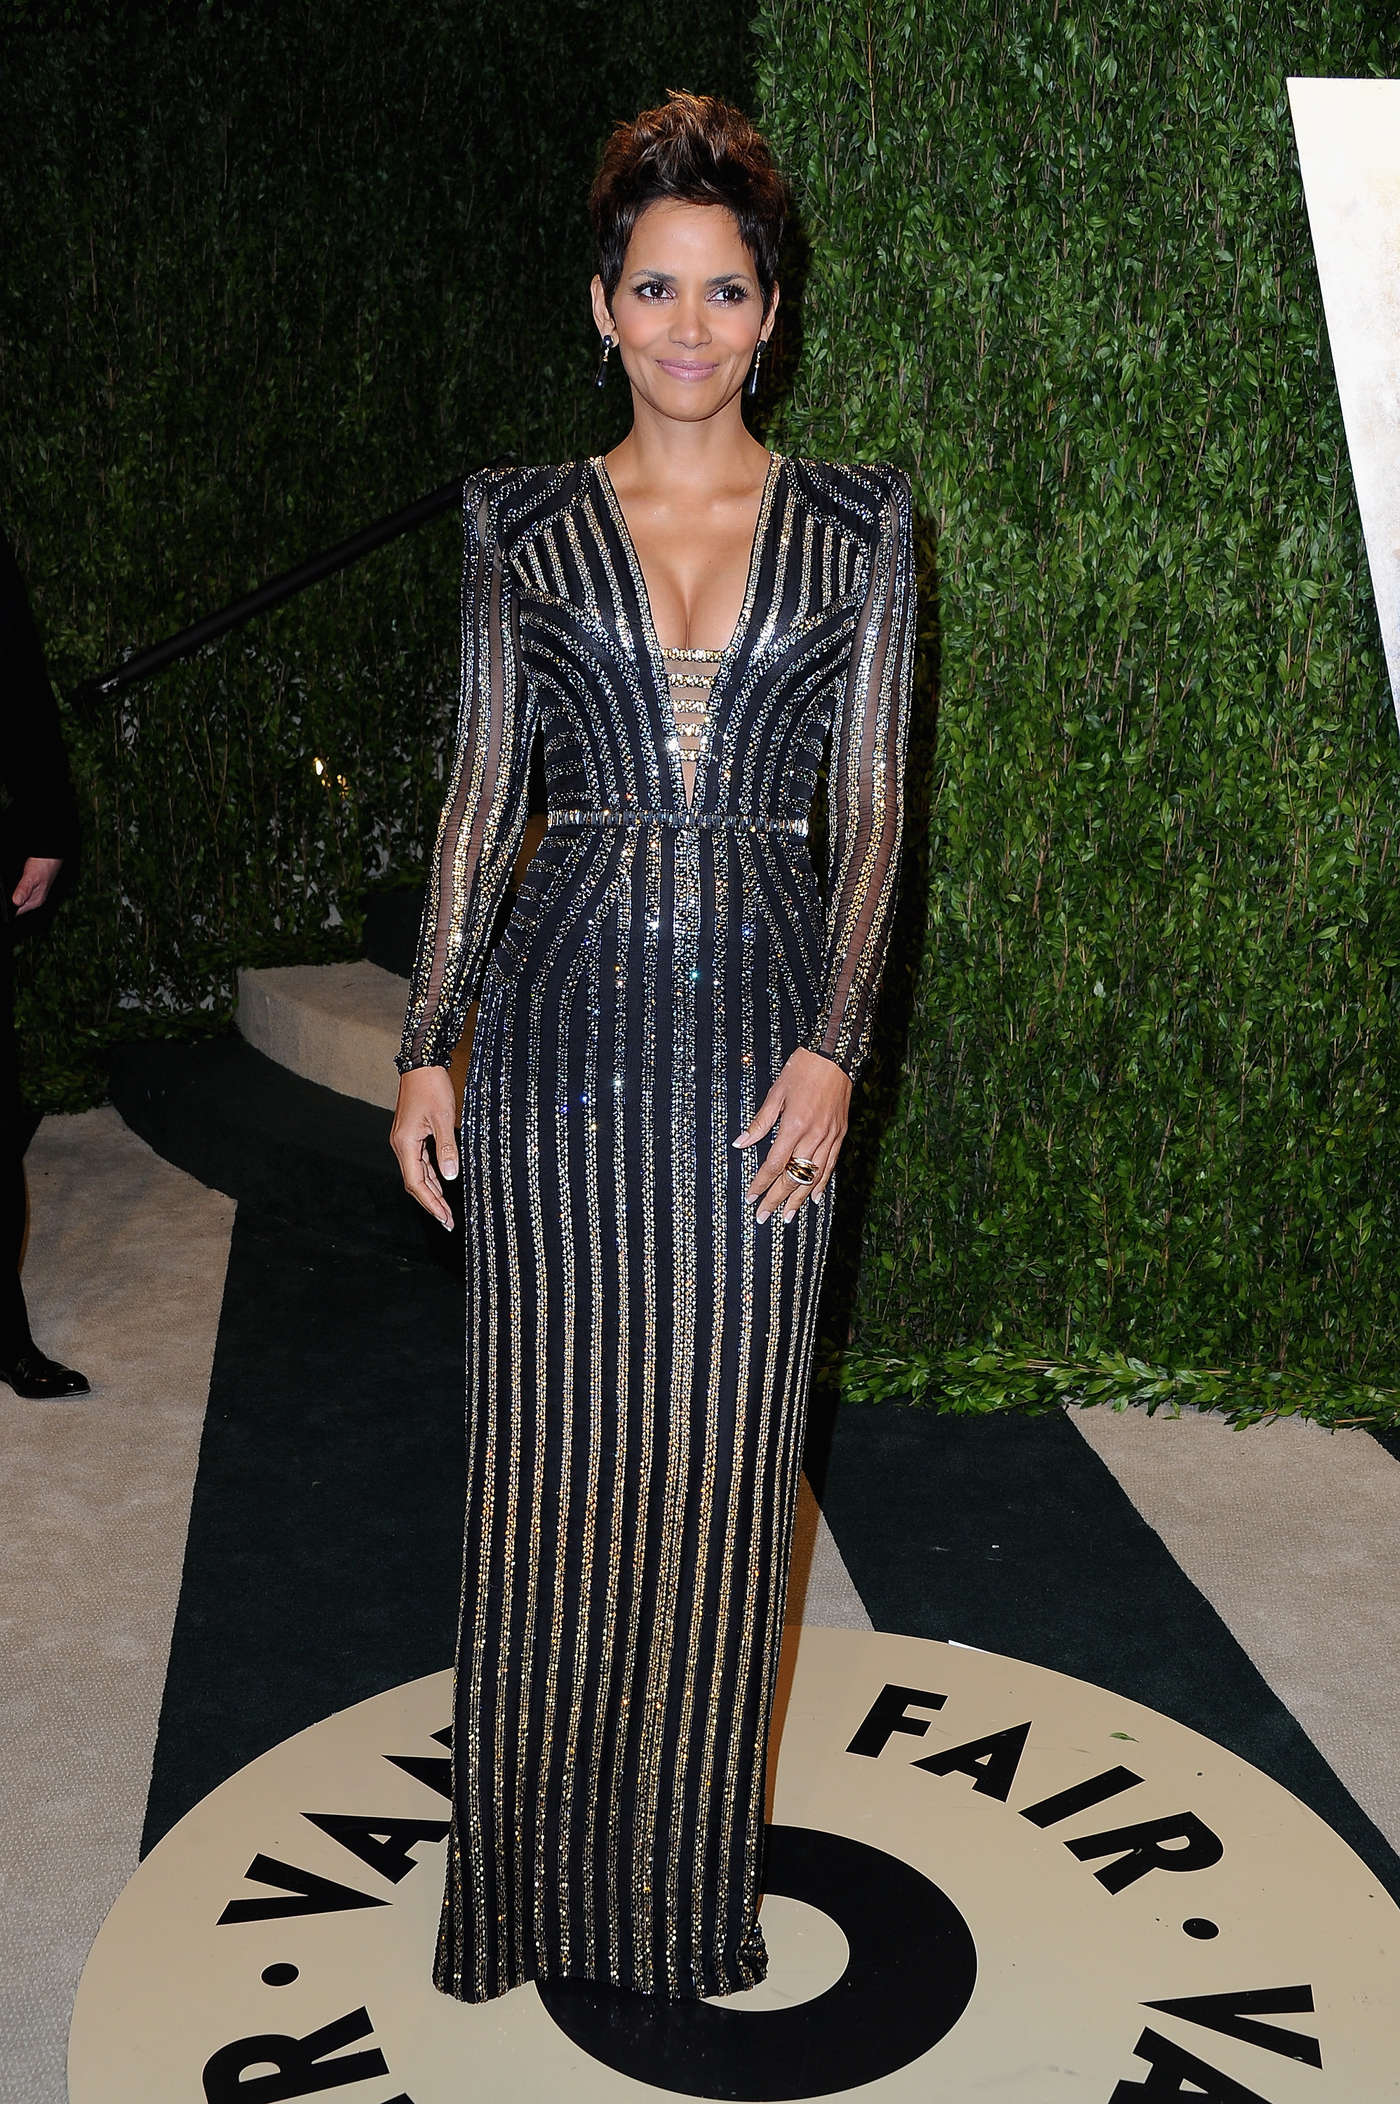 ... Halle Berry to a birthday party in Los Angeles on Saturday (March 28